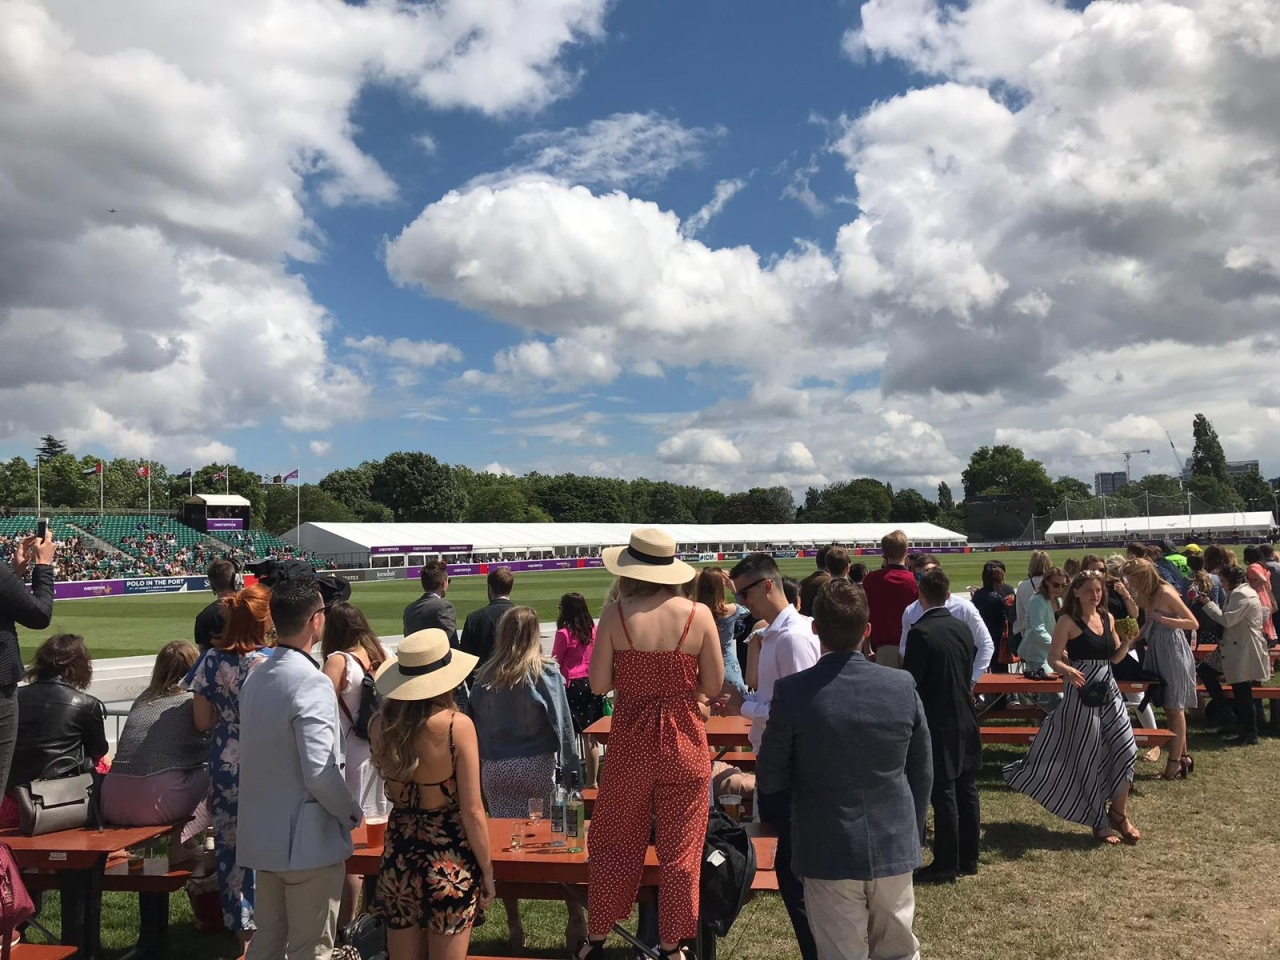 Crowds at polo in the park